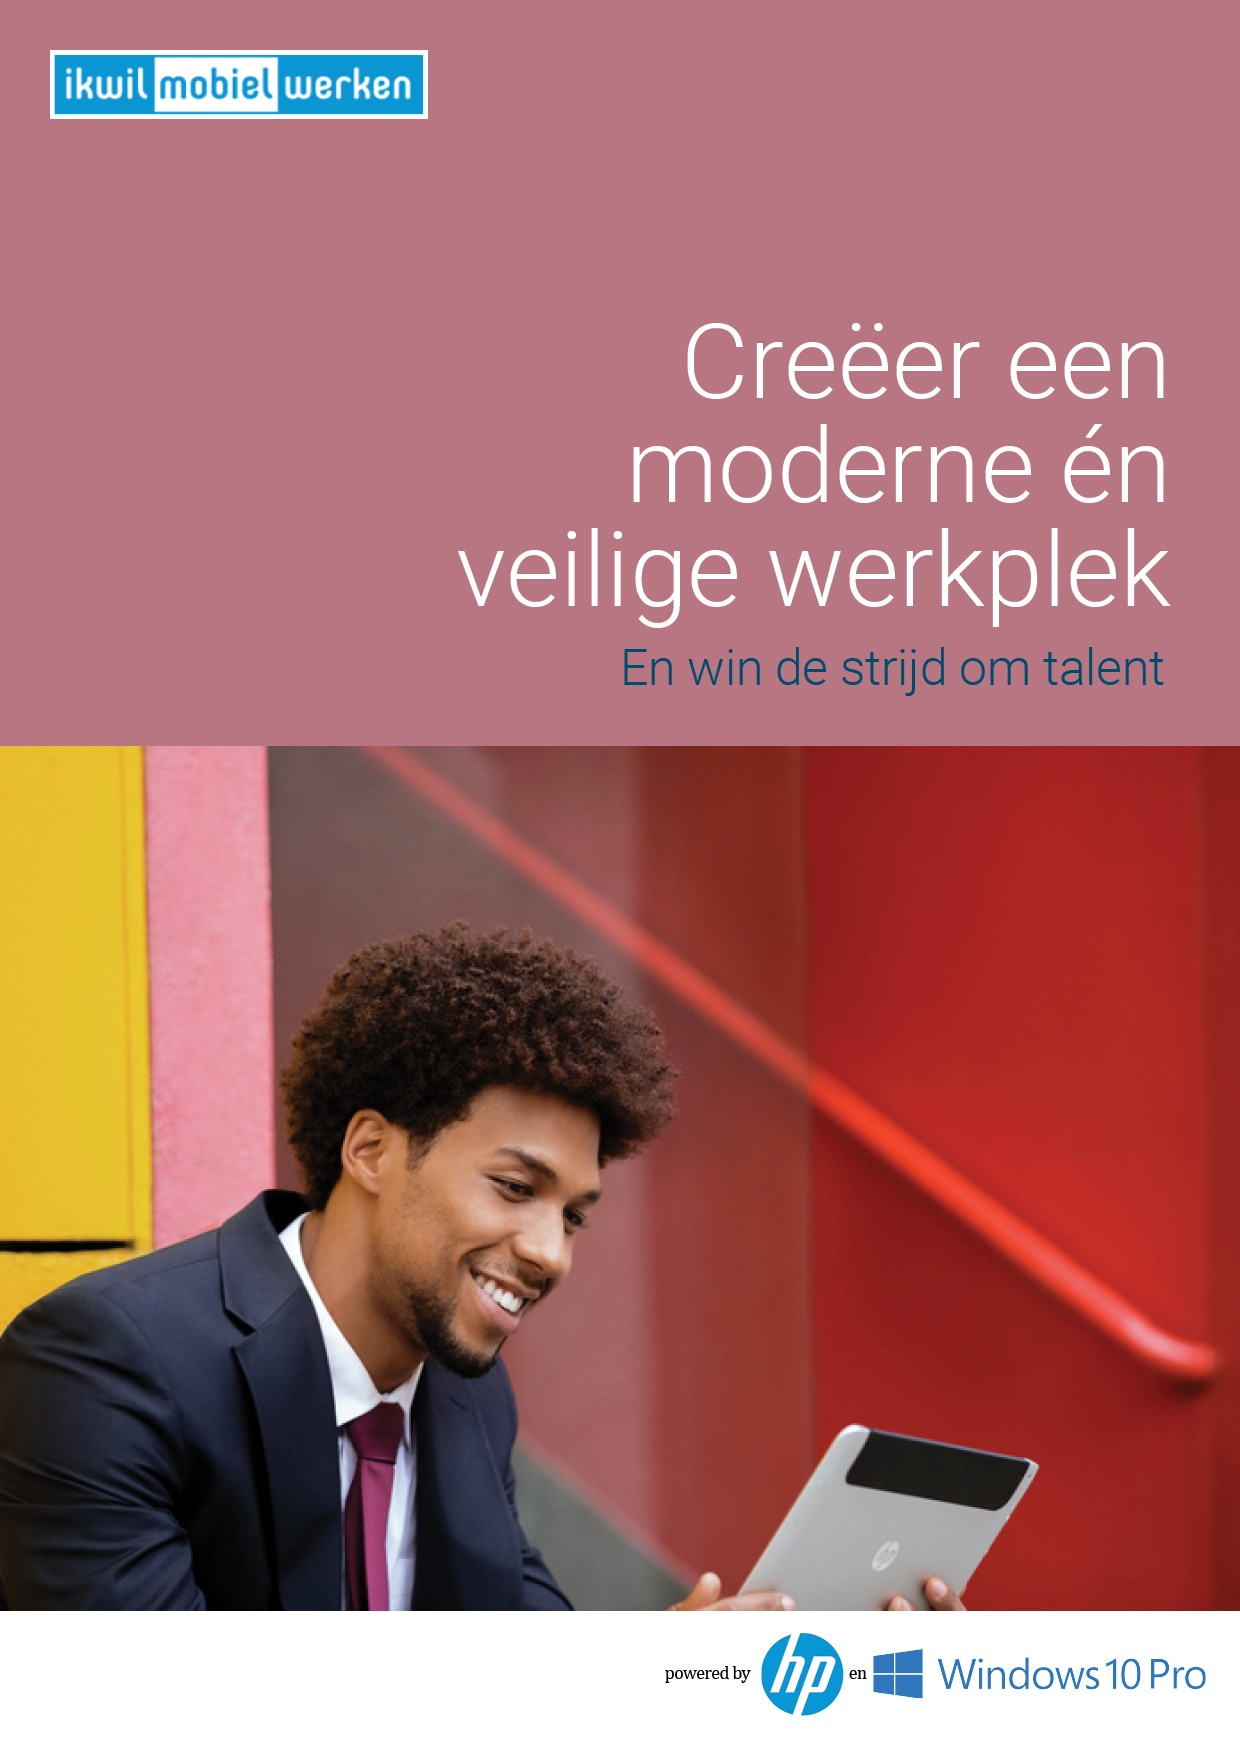 Whitepaper strijd om talent winnen